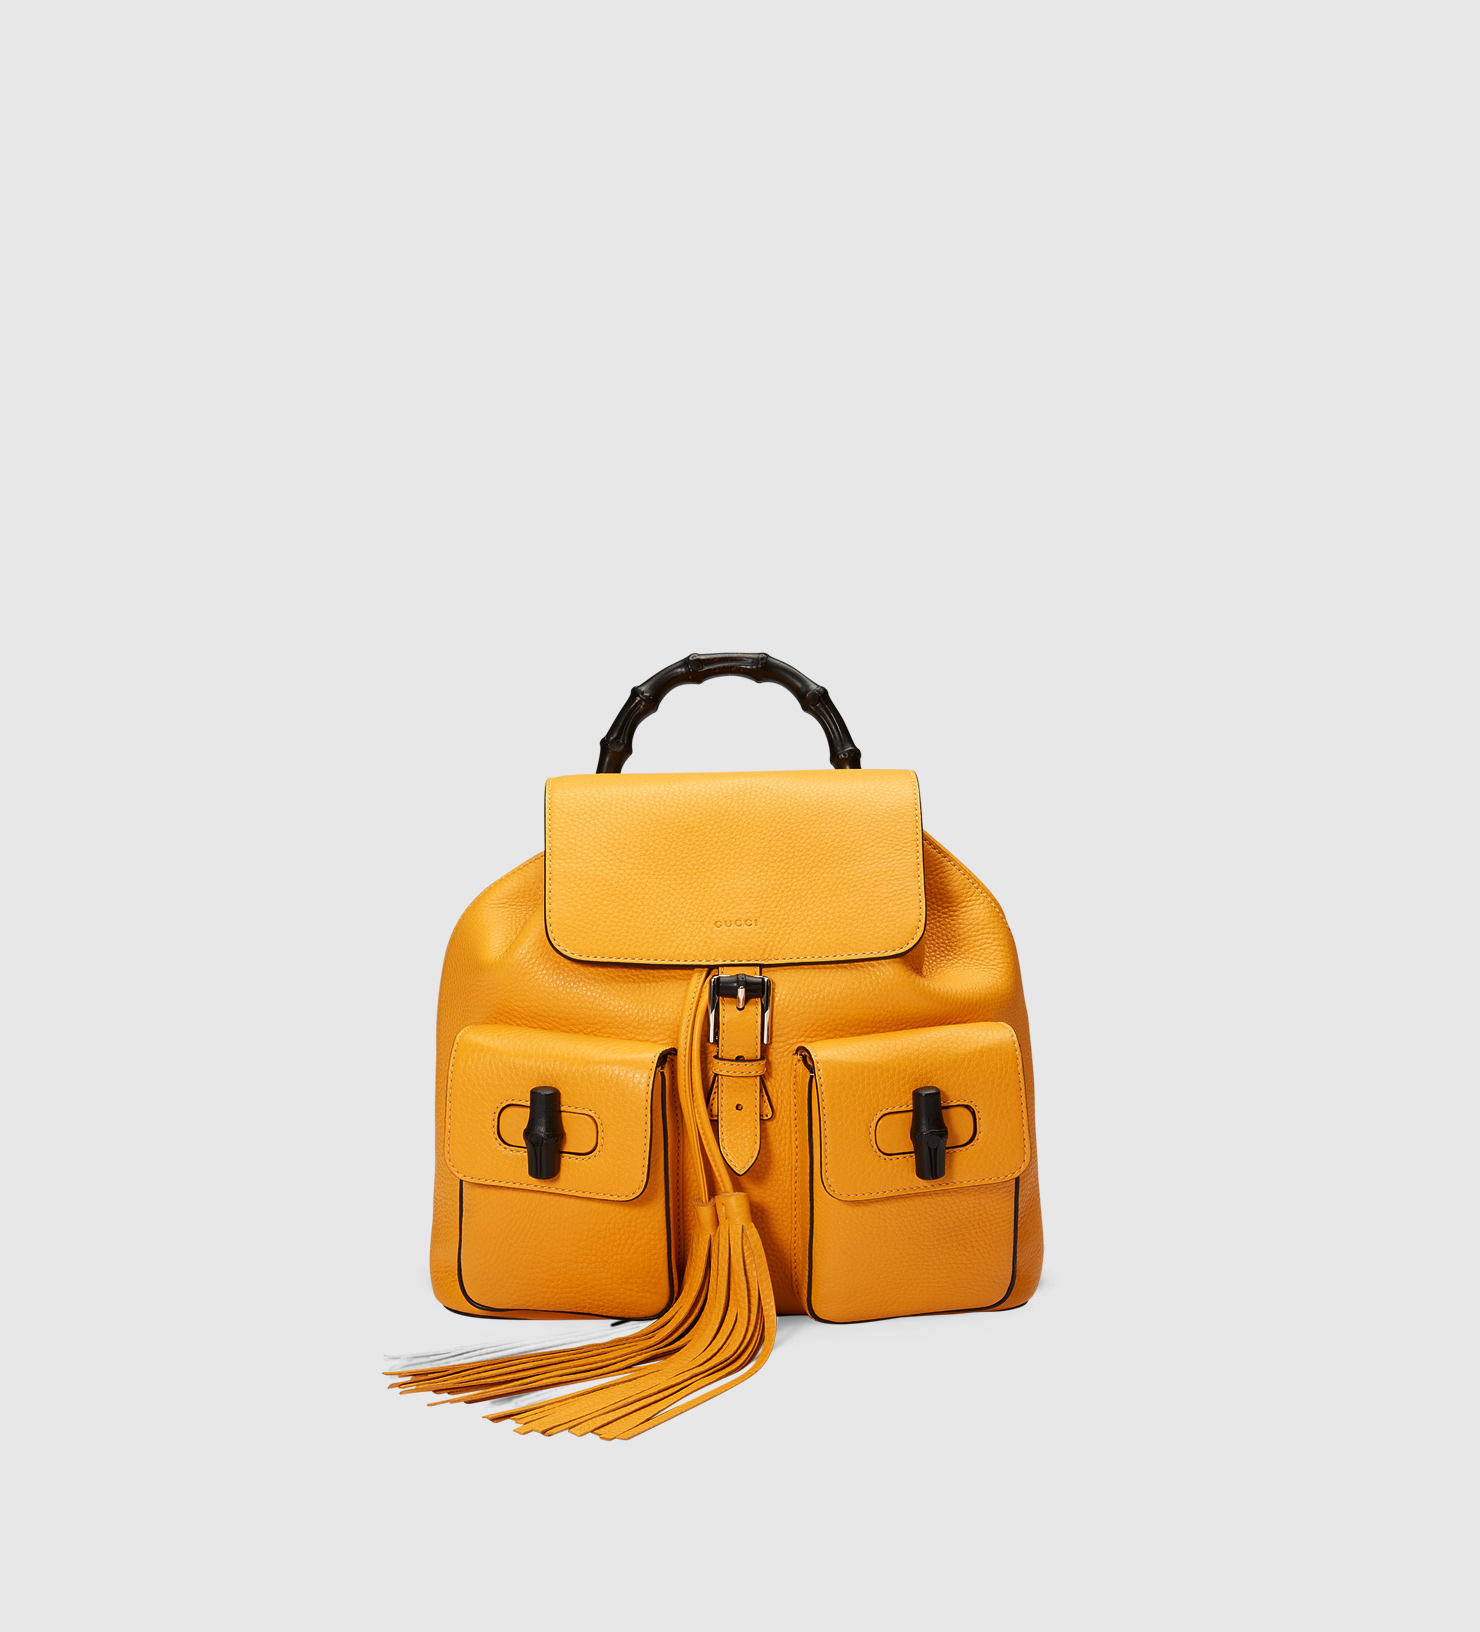 f2fae857291 Gucci Bamboo Leather Backpack in Yellow - Lyst